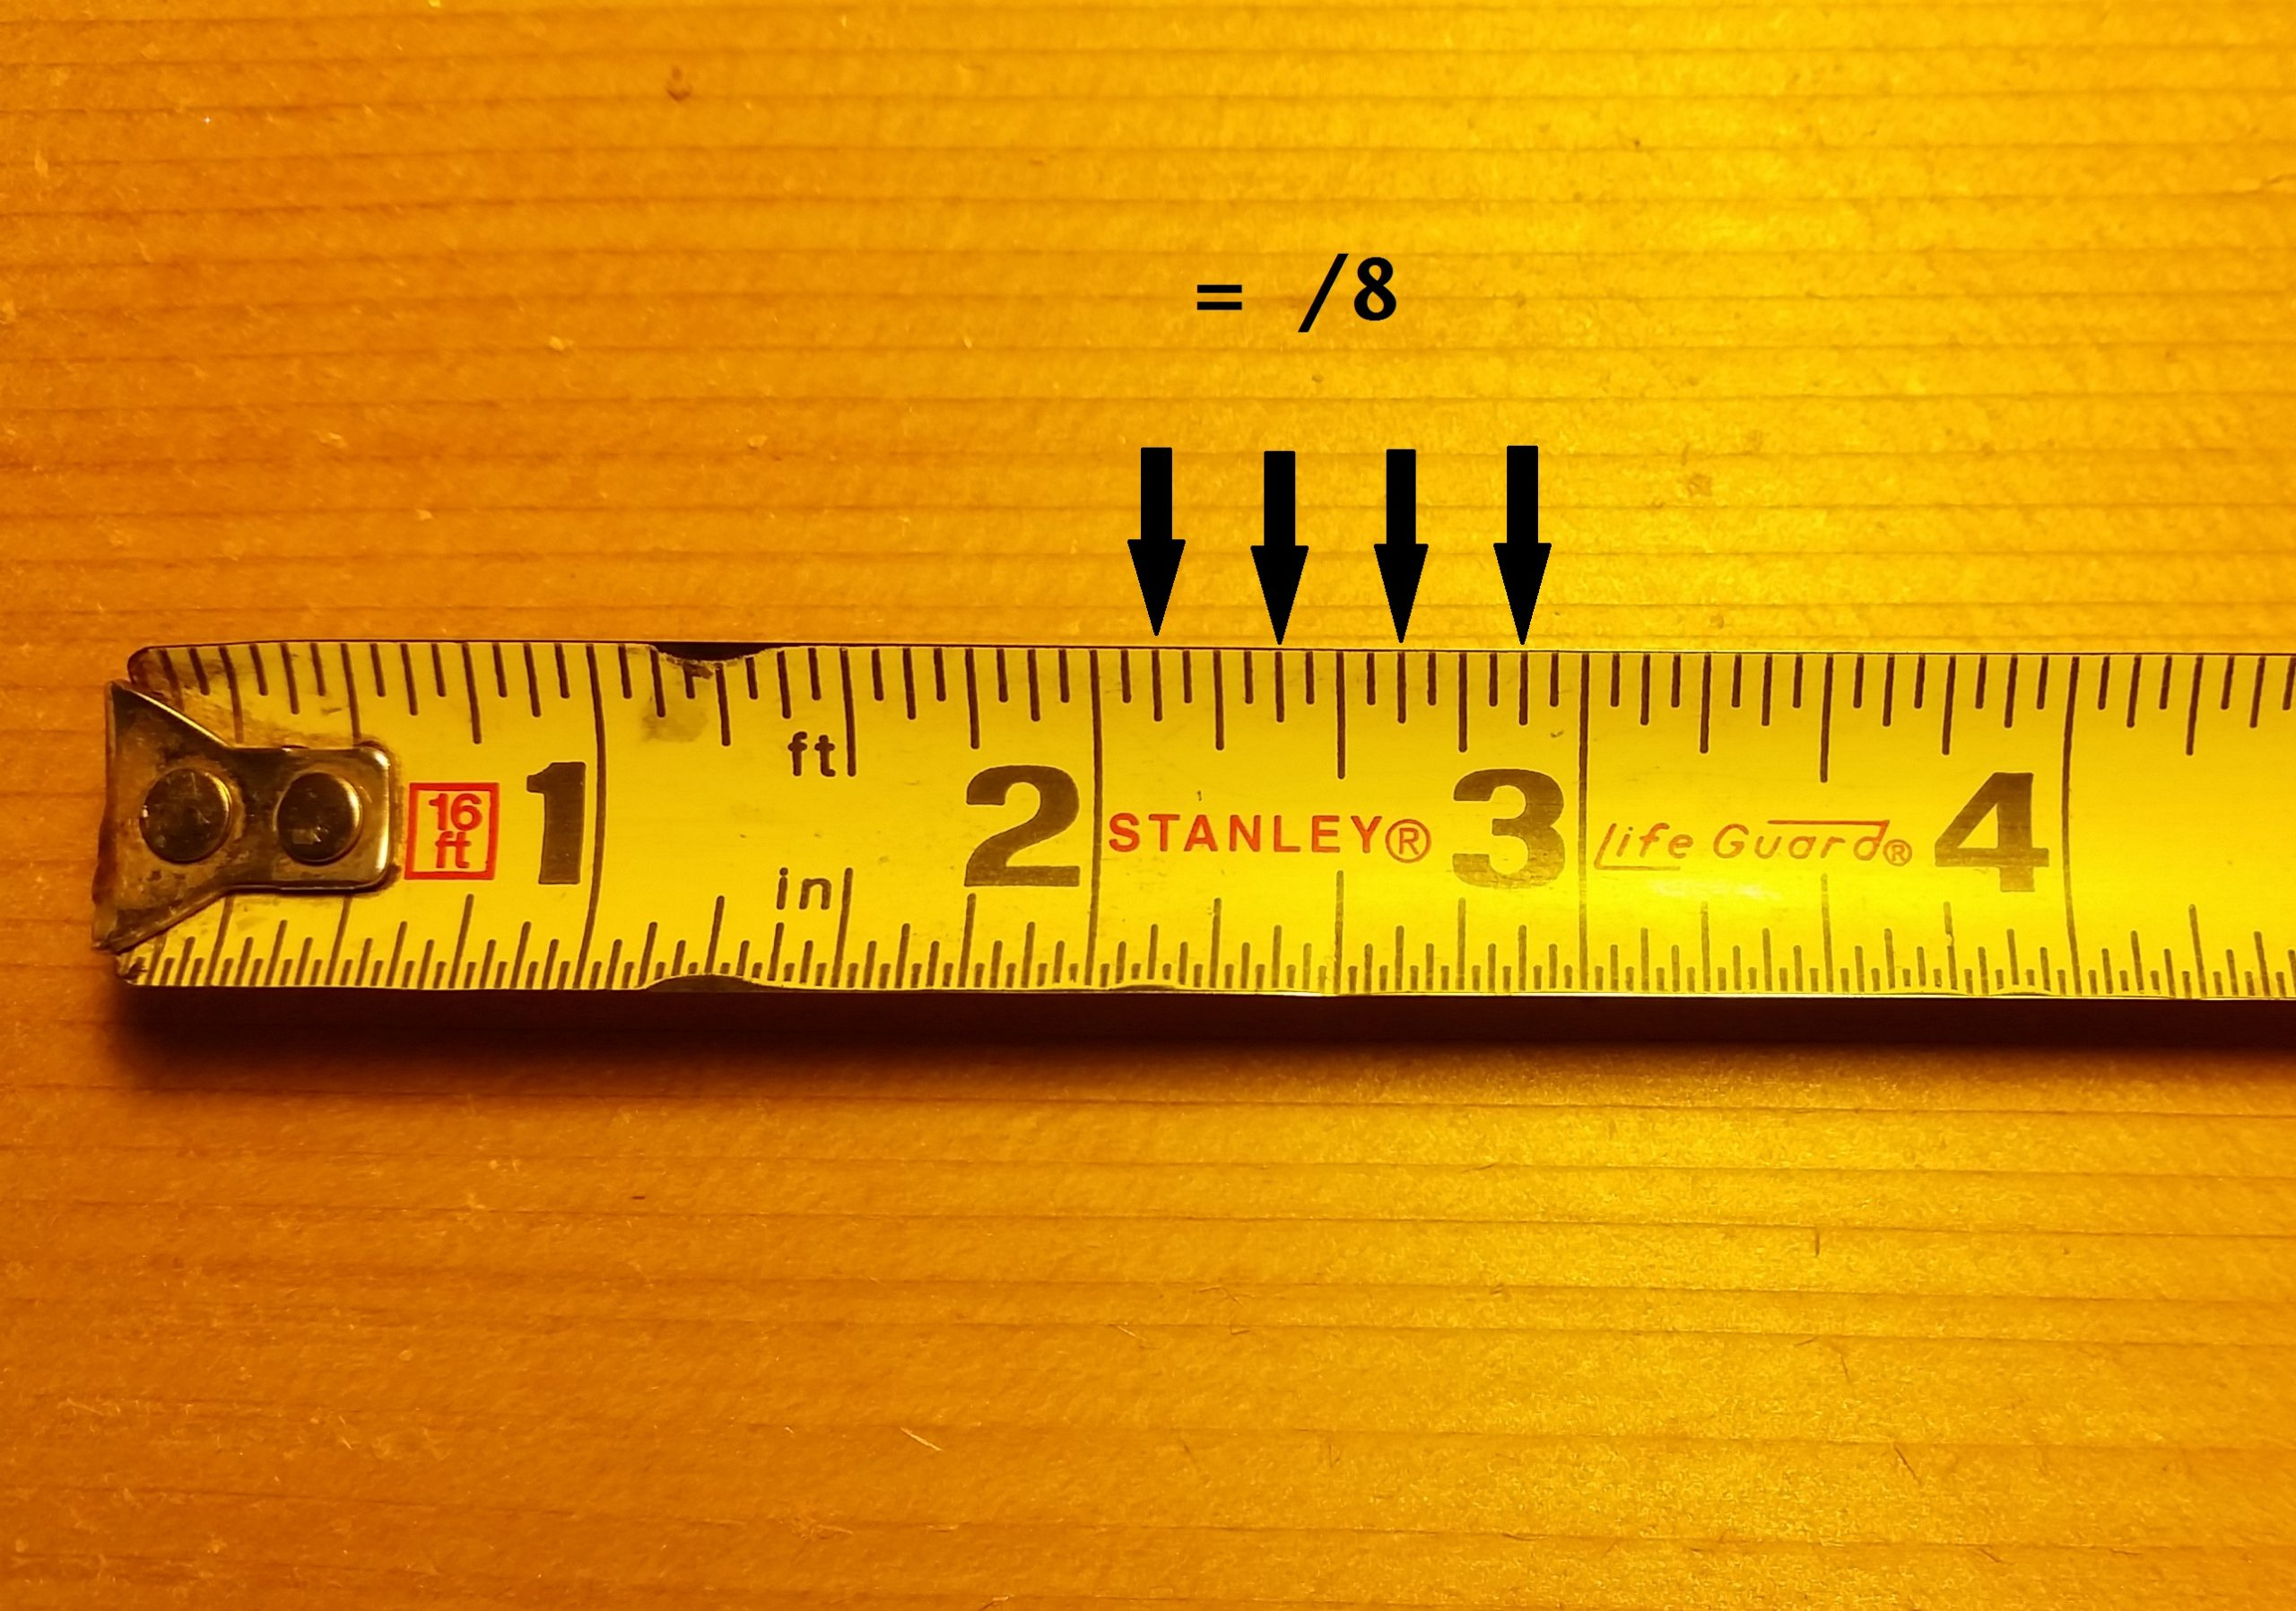 How To Read A Tape Ruler Printable Pictures